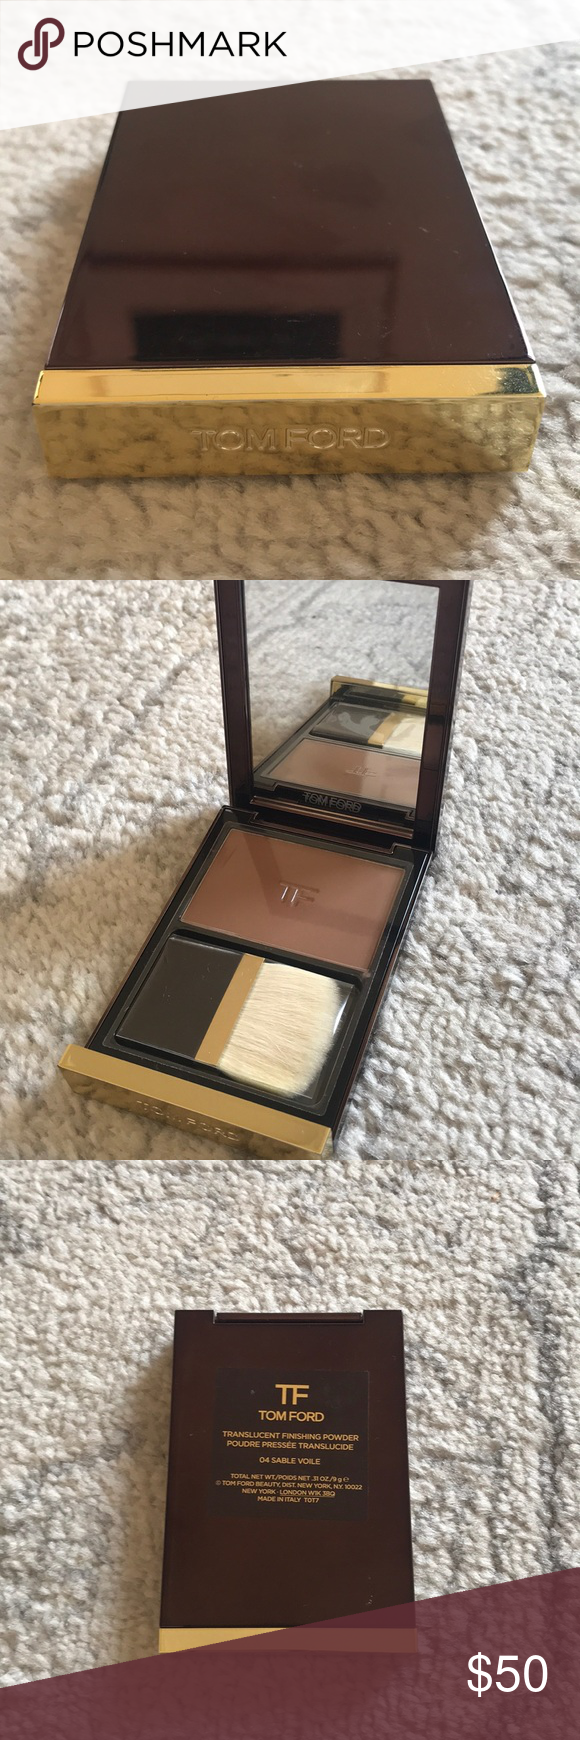 c7d3b342e2958 Unopened Tom Ford translucent finishing powder Unopened Tom Ford  translucent finishing powder